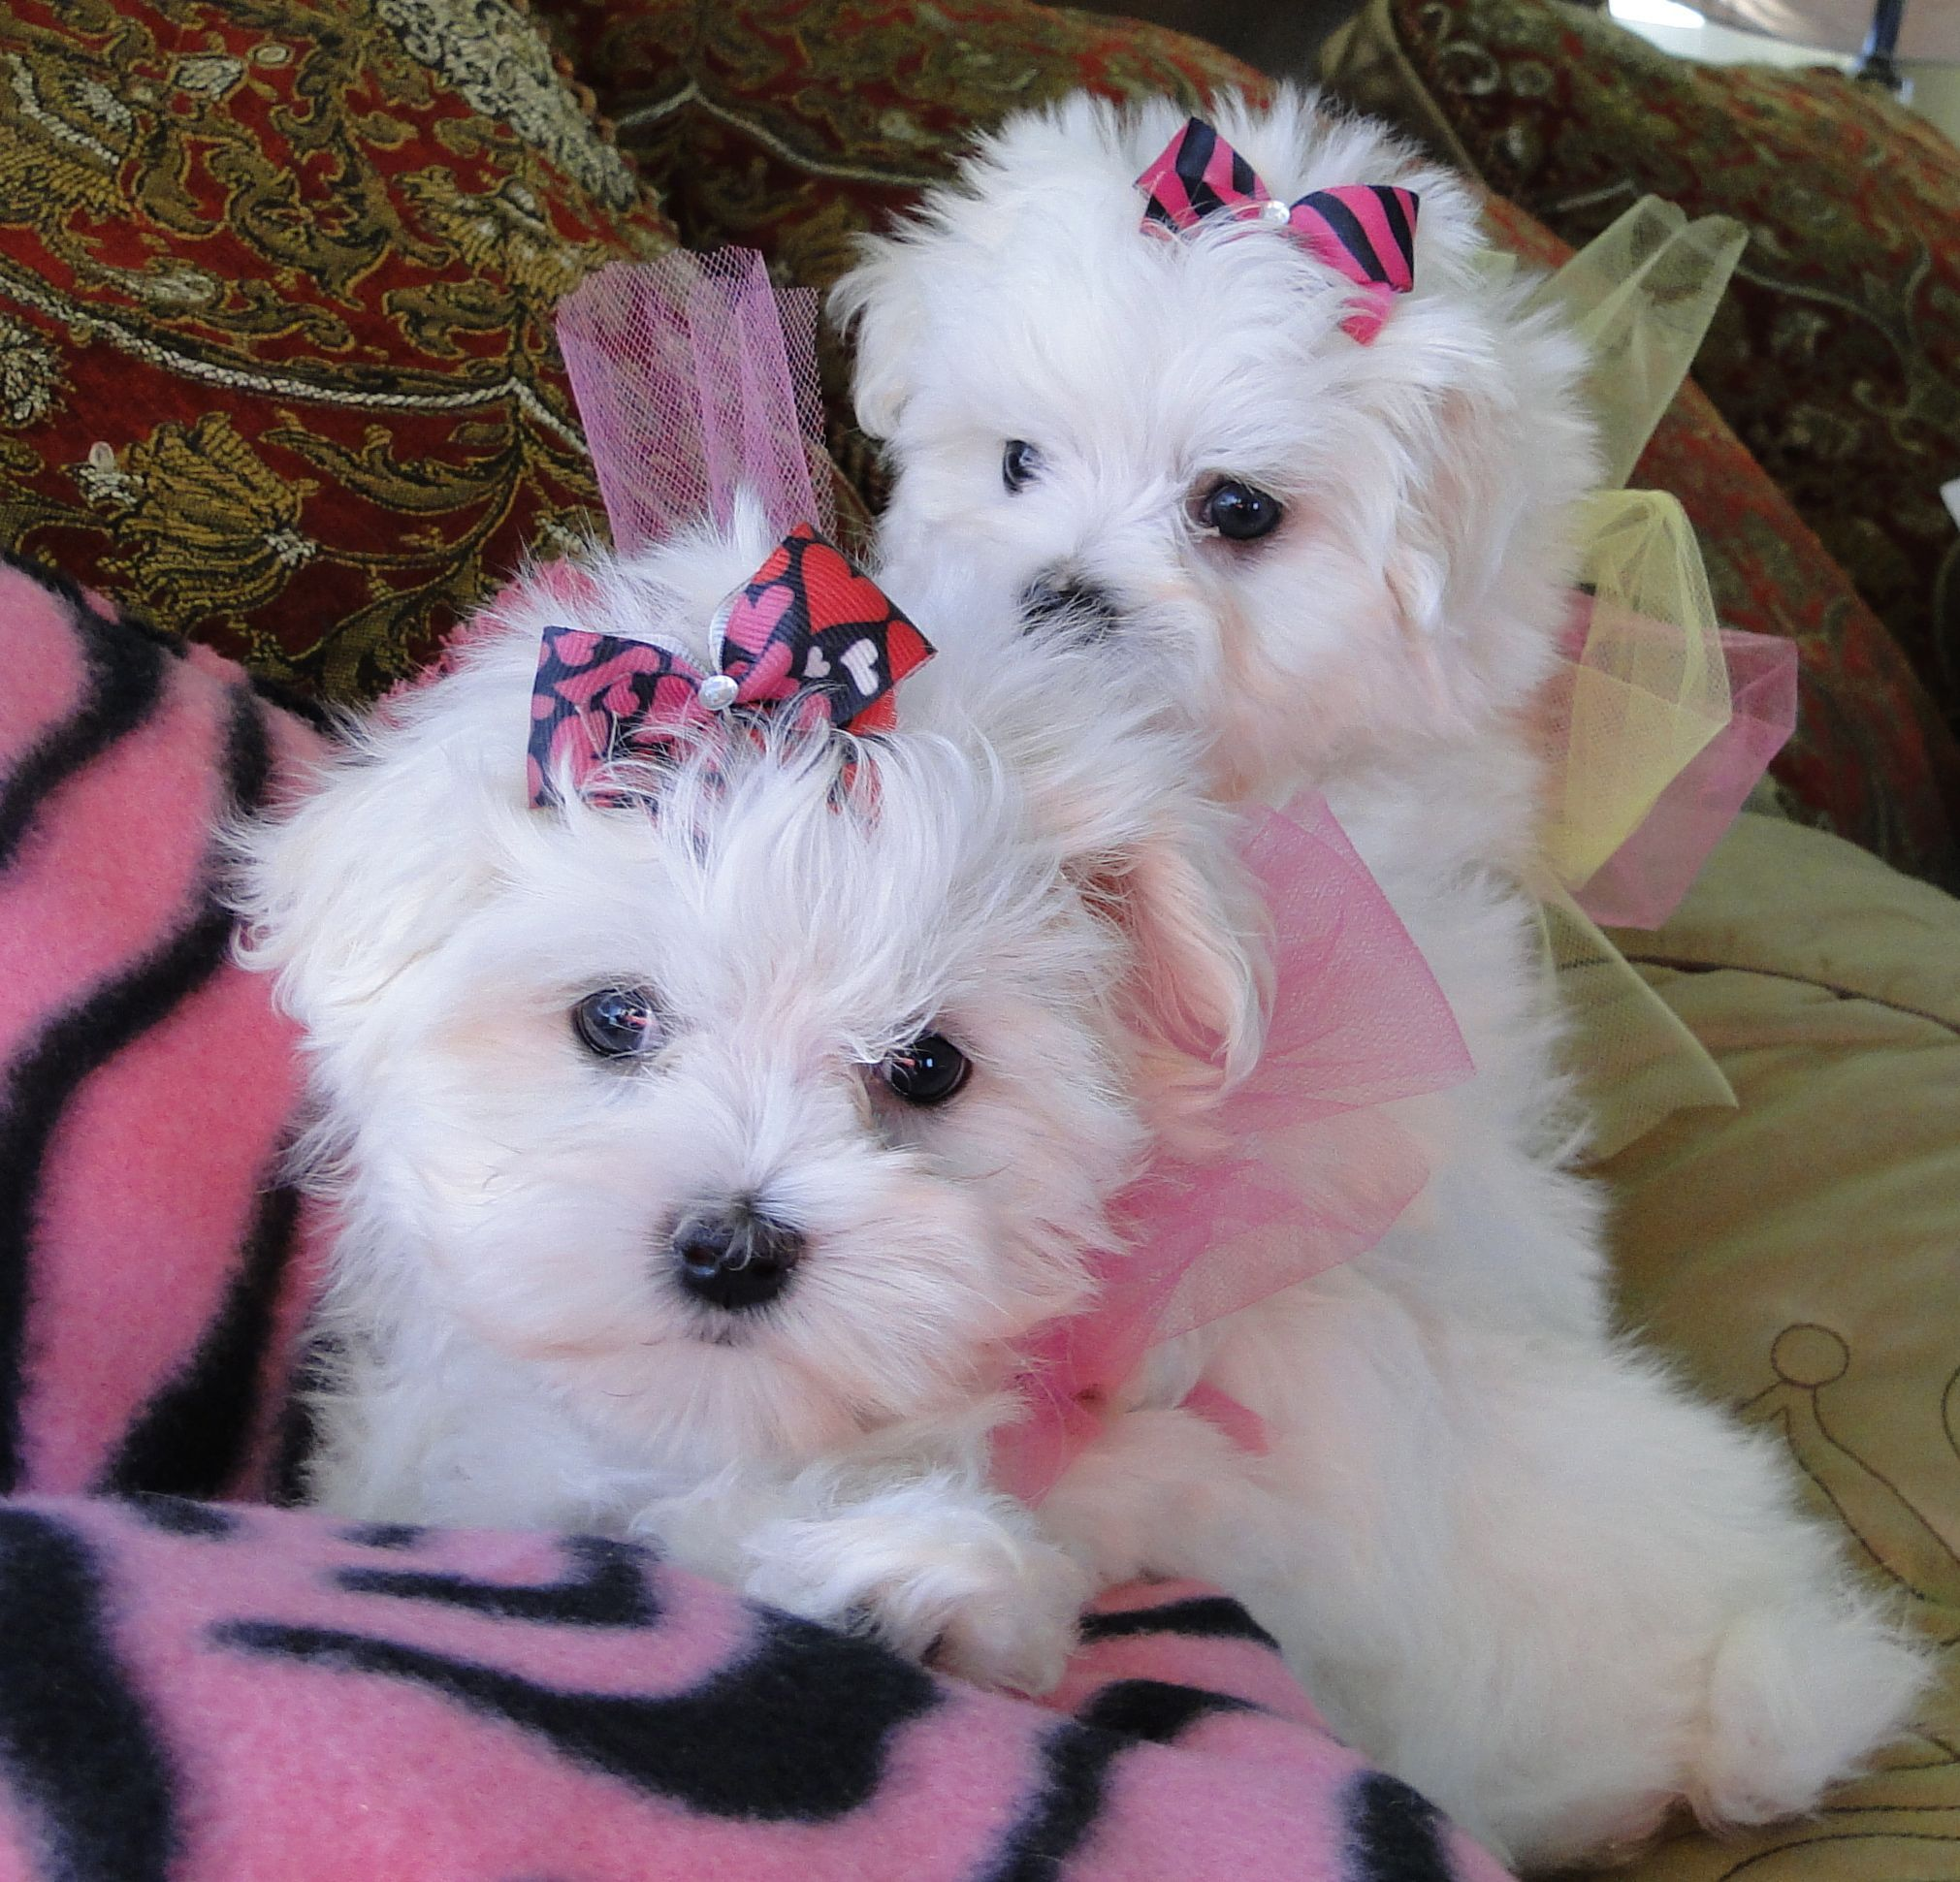 Look At My Beautiful Baby Maltese We Adore Our Puppies Www Texasteacuppuppy Com Www Facebook Com Facebook Com Maltese Puppy Maltese Dogs Puppy Adoption